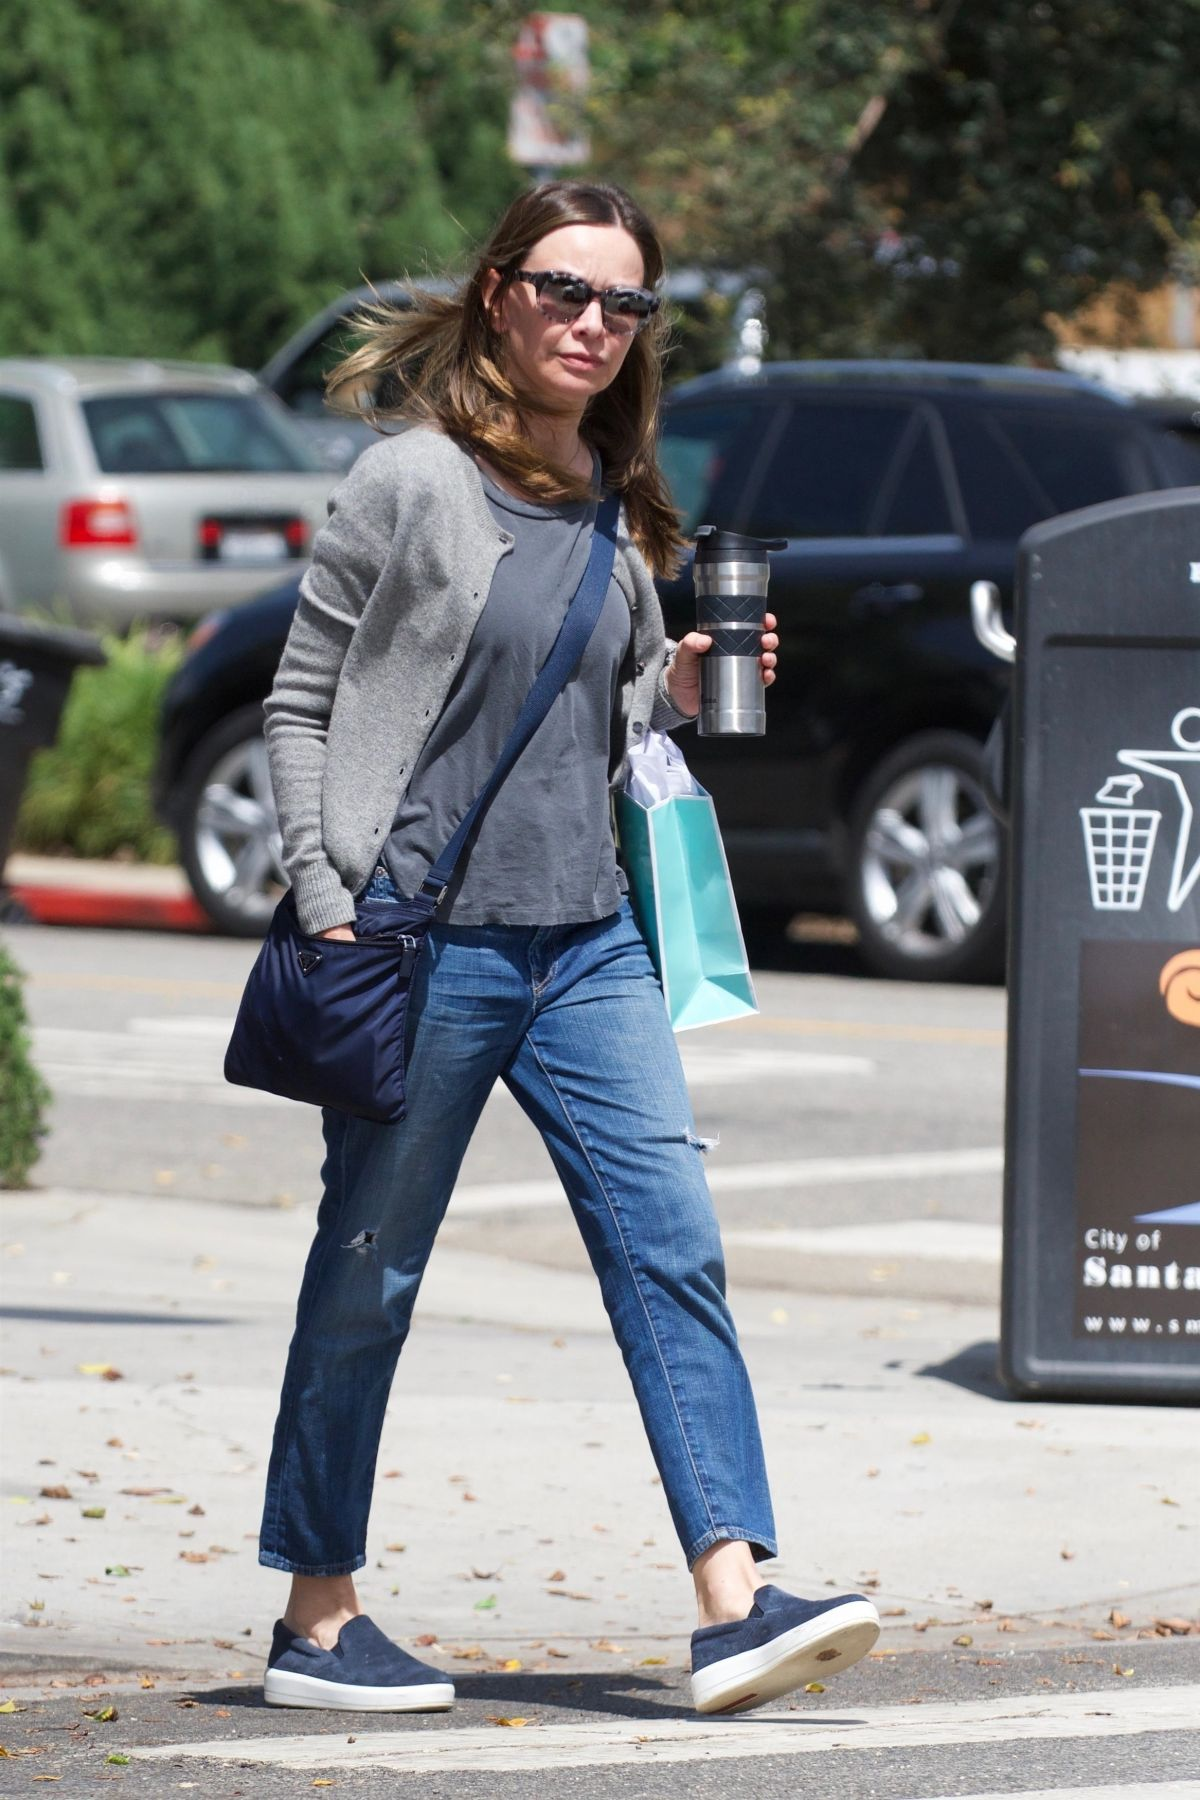 Calista Flockhart Gets some shopping done in Santa Monica